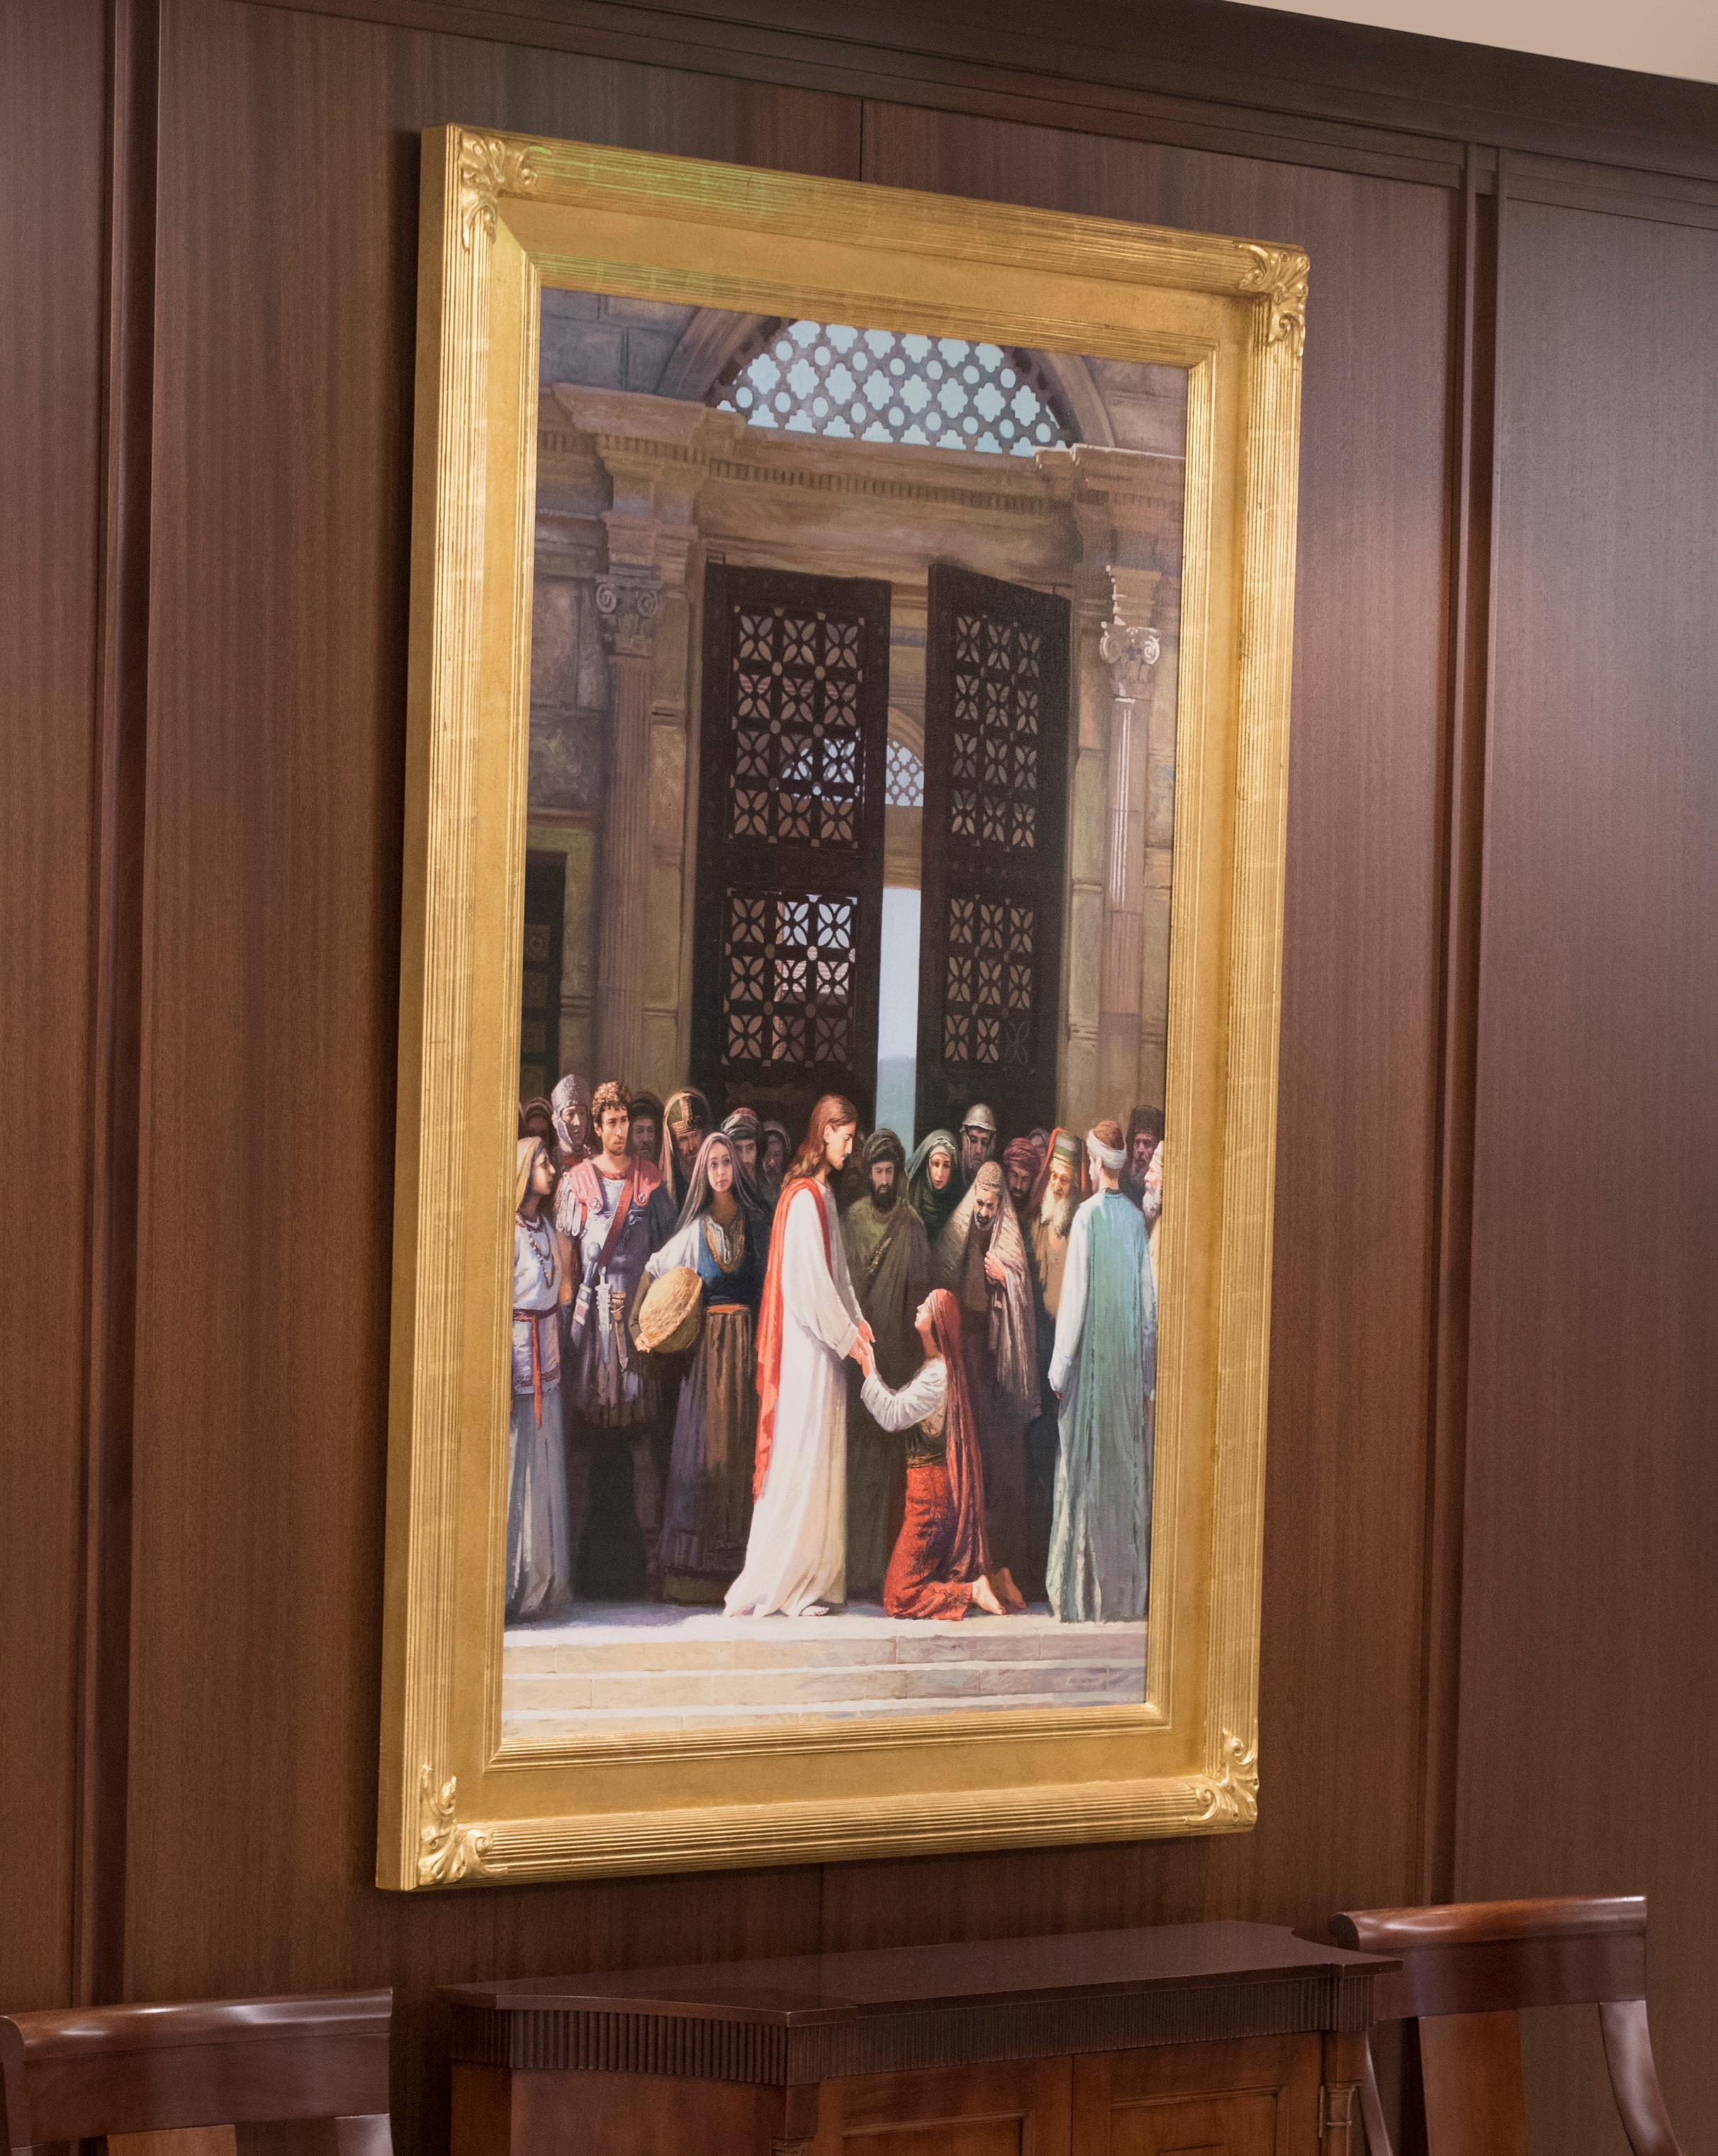 Several paintings of Jesus Christ can be seen in the Jordan River Utah Temple.{ }©2018 BY INTELLECTUAL RESERVE, INC. ALL RIGHTS RESERVED.